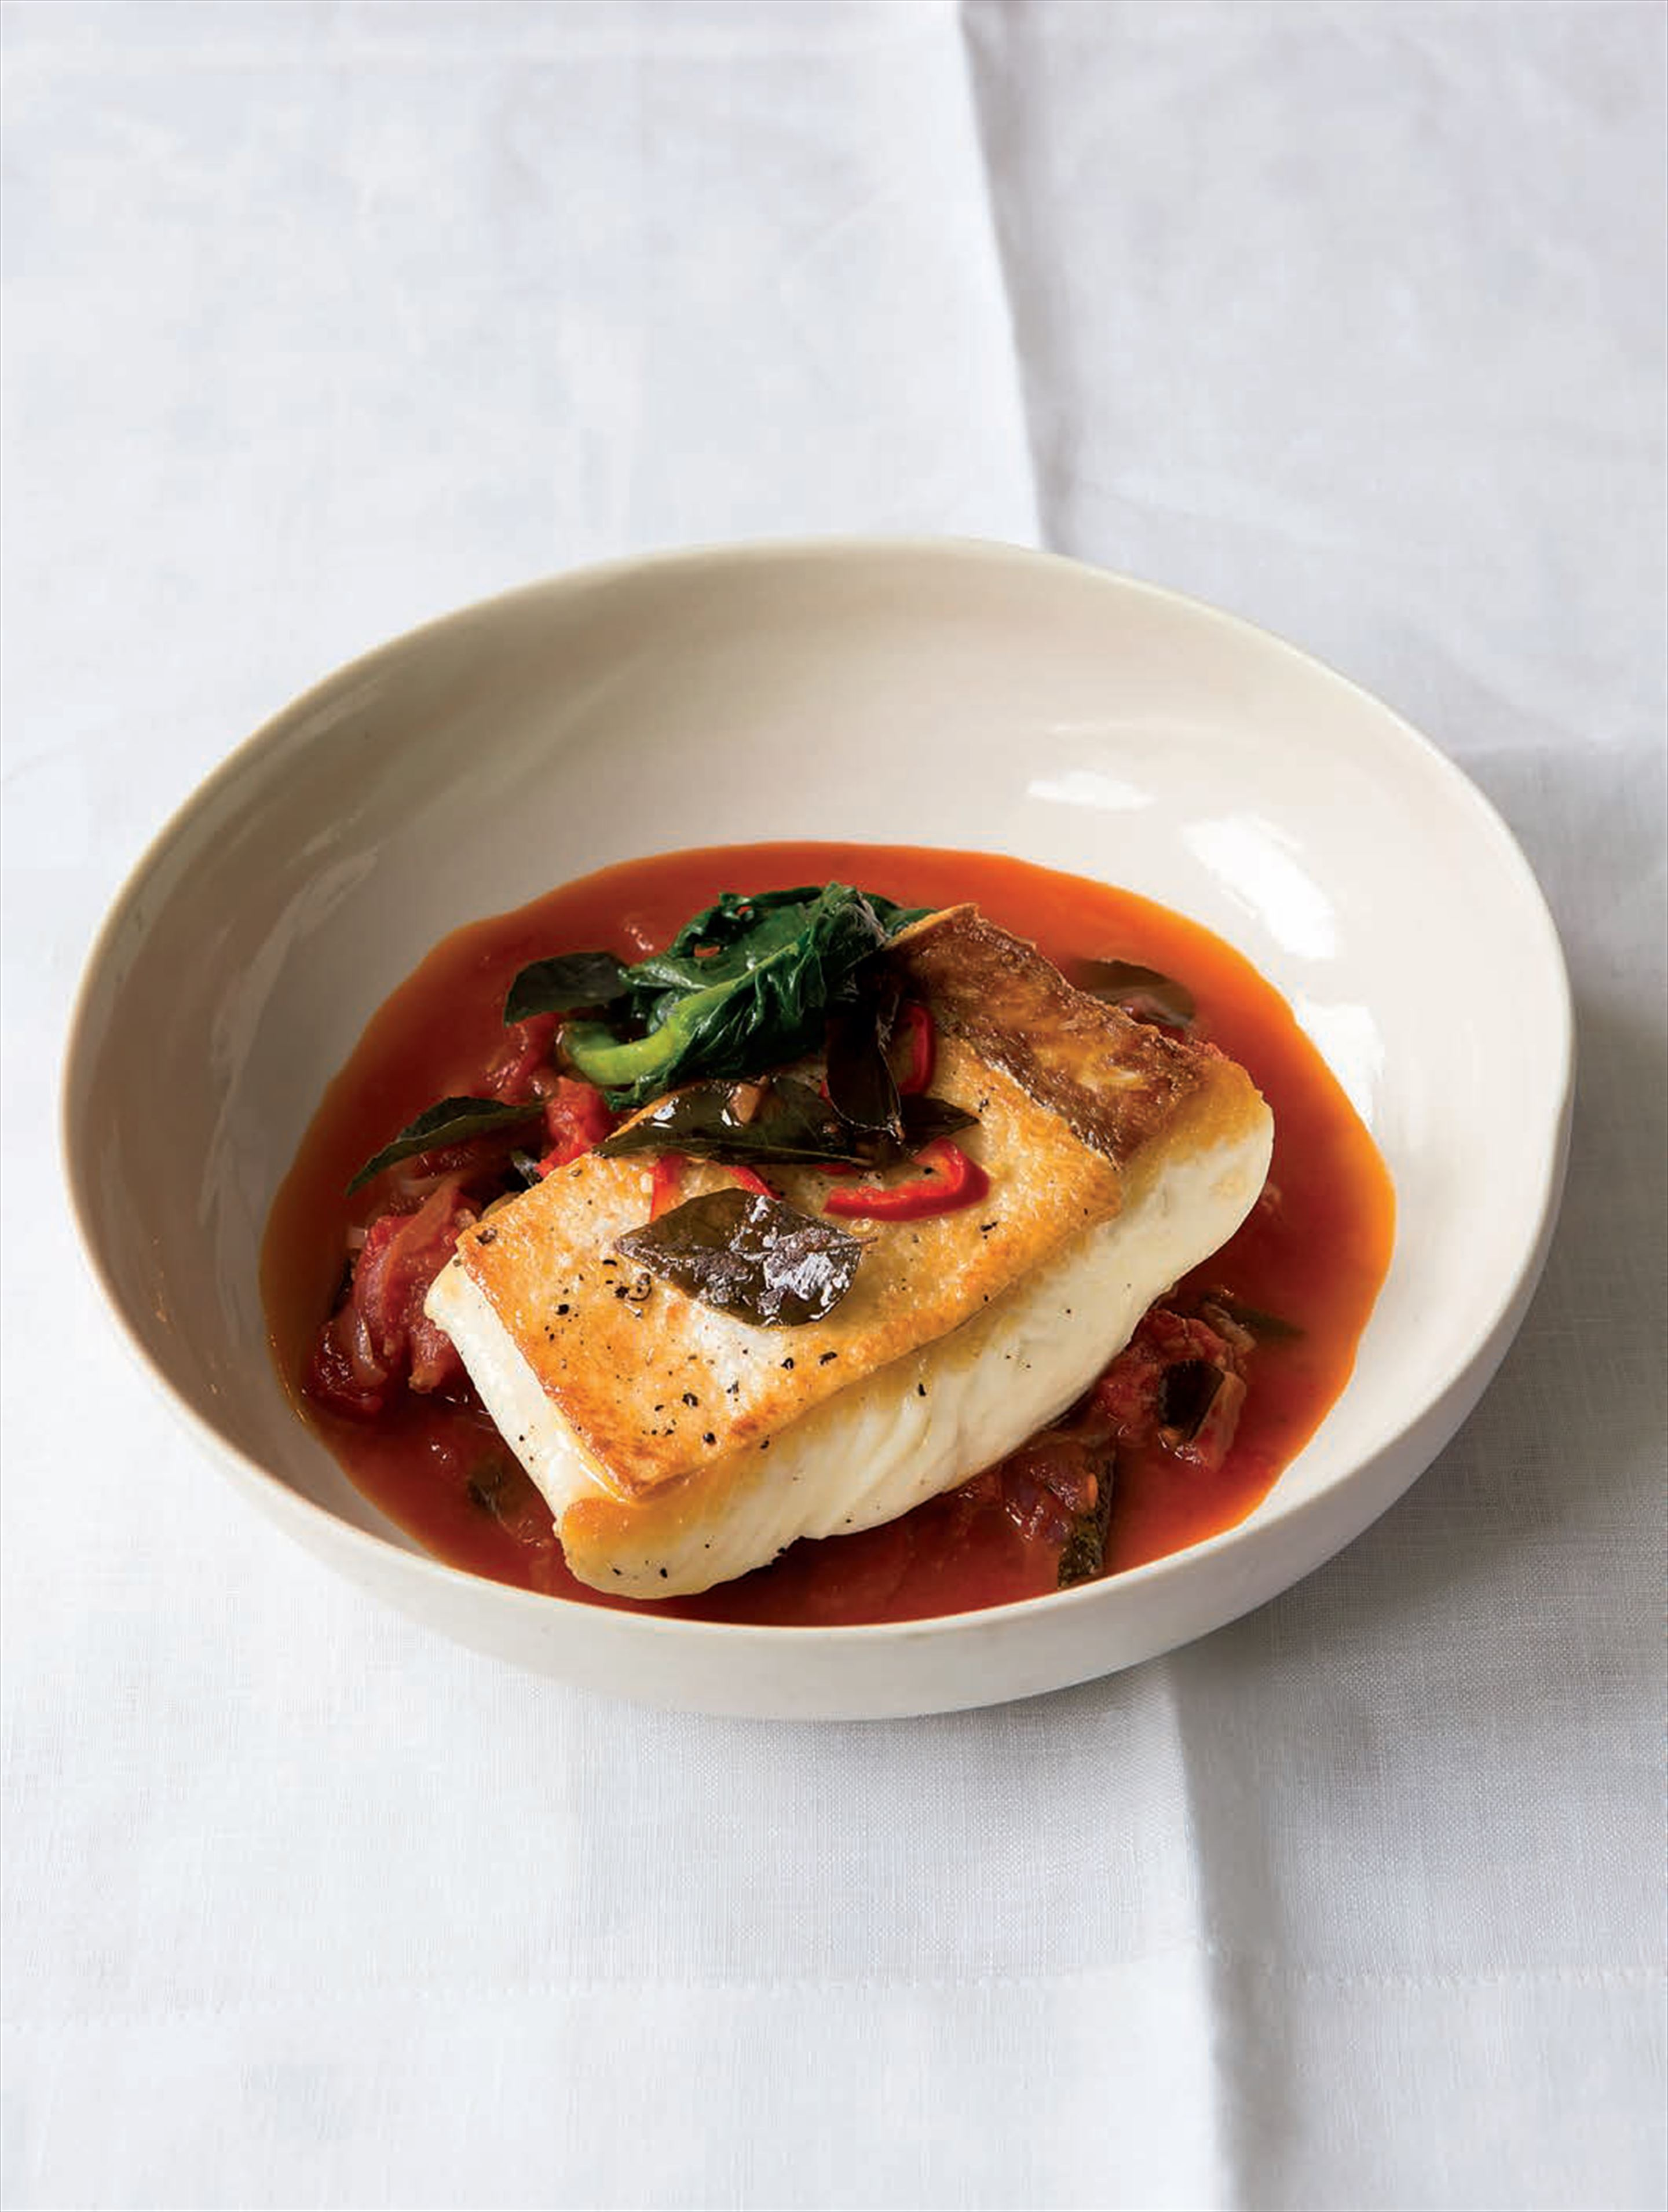 Halibut with mustard seeds, curry leaves and tomatoes